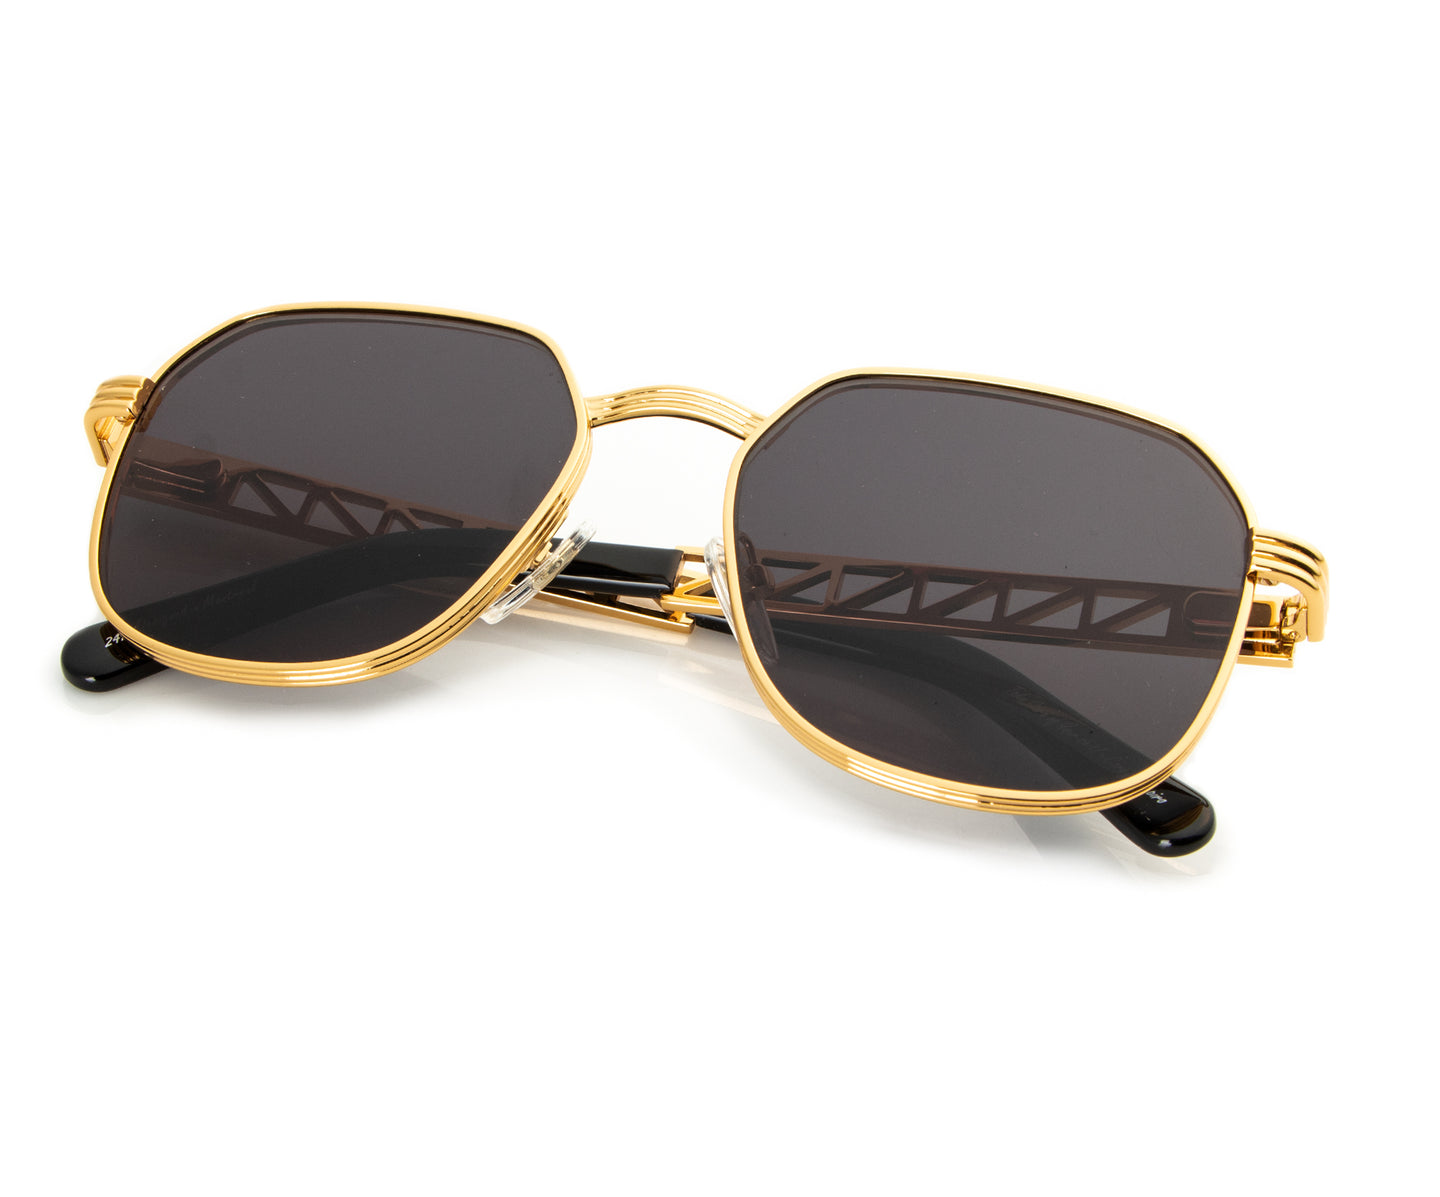 VF Jacques Cartier CEO 24KT Gold (Black), VF Masterpiece , glasses frames, eyeglasses online, eyeglass frames, mens glasses, womens glasses, buy glasses online, designer eyeglasses, vintage sunglasses, retro sunglasses, vintage glasses, sunglass, eyeglass, glasses, lens, vintage frames company, vf